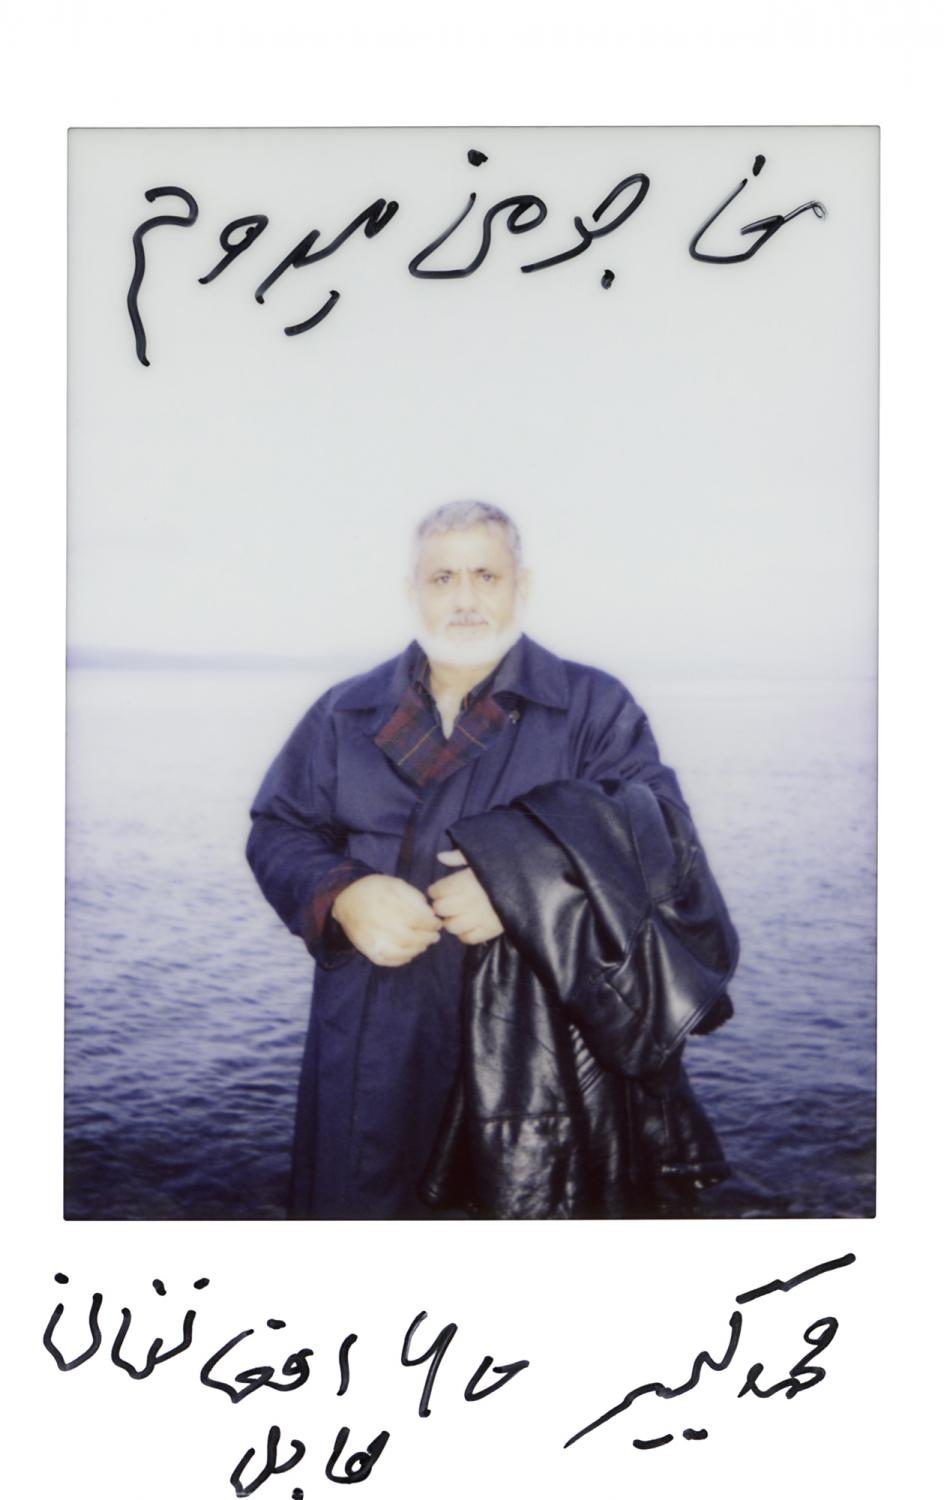 »I am going to Germany. Mohammad Kabir, 65, Afghanistan, Kabul« Lesvos, Greece, November 2015